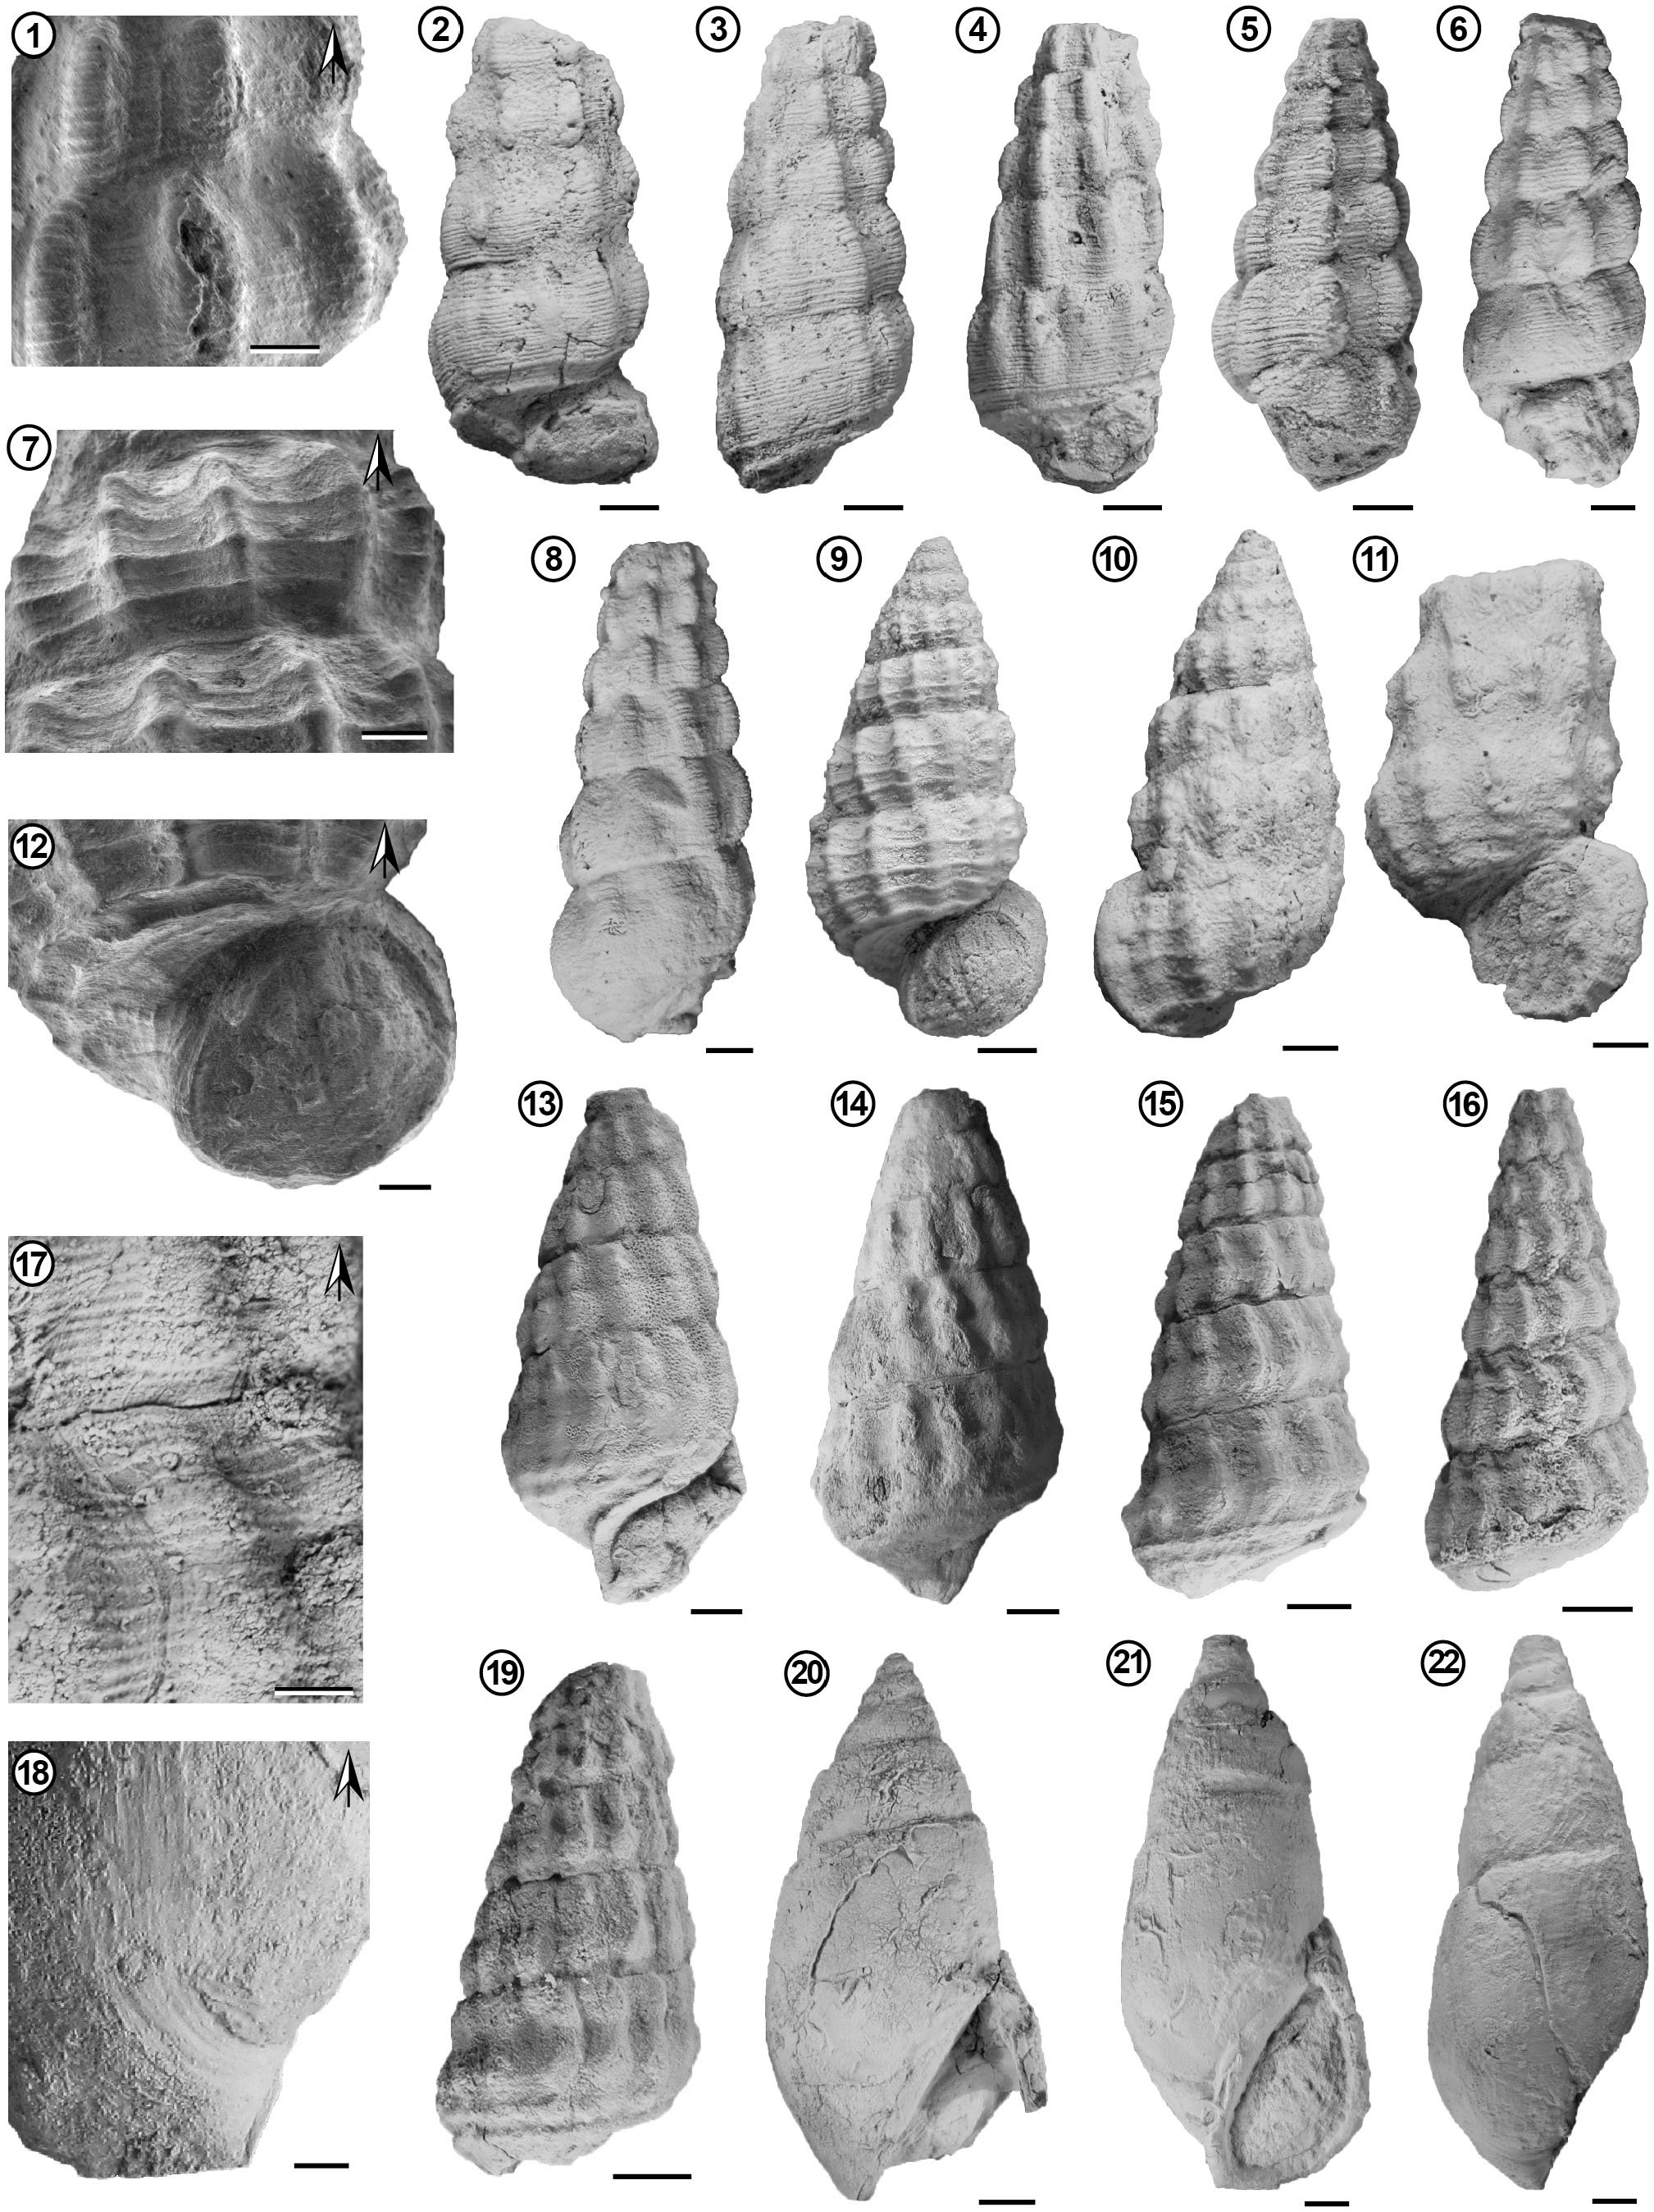 New Records of Marine Gastropods from the Lower Cretaceous